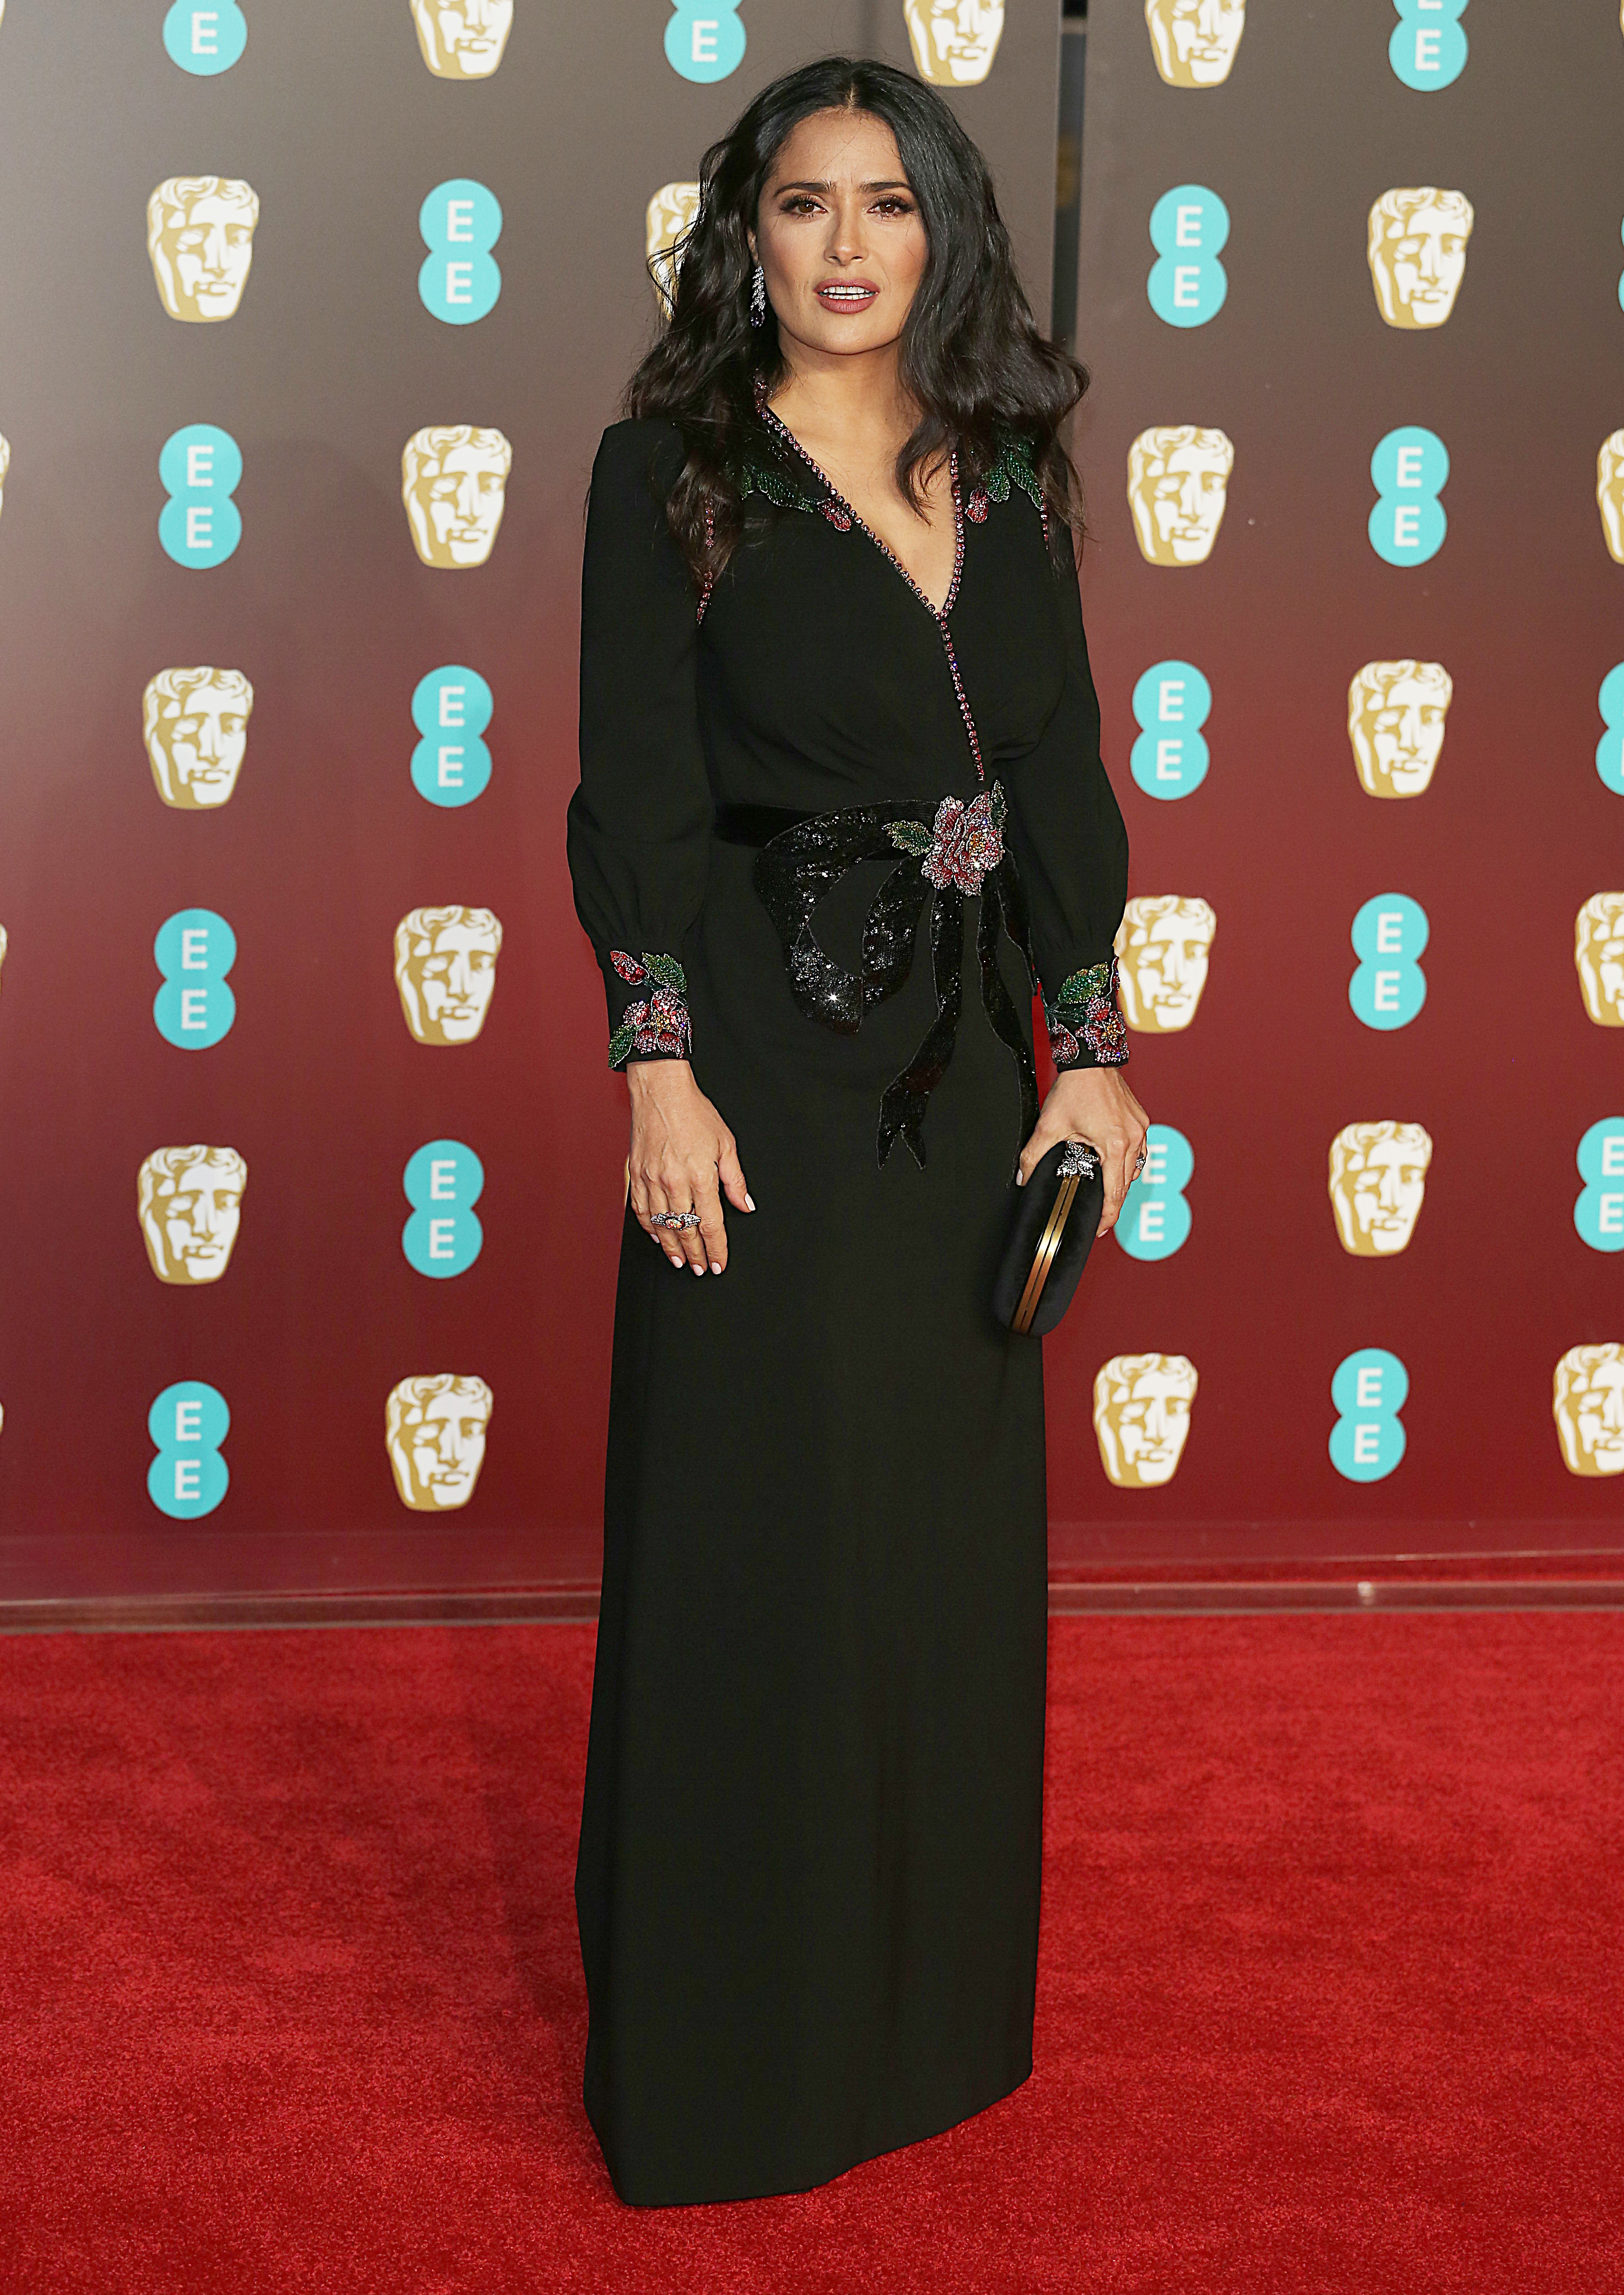 EE British Academy Film Awards 2018 (BAFTAs), Royal Albert Hall, London UK, 18 February 2018, Photo by Brett D. Cove <P> Pictured: Salma Hayek <B>Ref: SPL1661269  190218  </B><BR/> Picture by: Brett D. Cove / Splash News<BR/> </P><P> <B>Splash News and Pictures</B><BR/> Los Angeles:310-821-2666<BR/> New York:212-619-2666<BR/> London:870-934-2666<BR/> <span id=